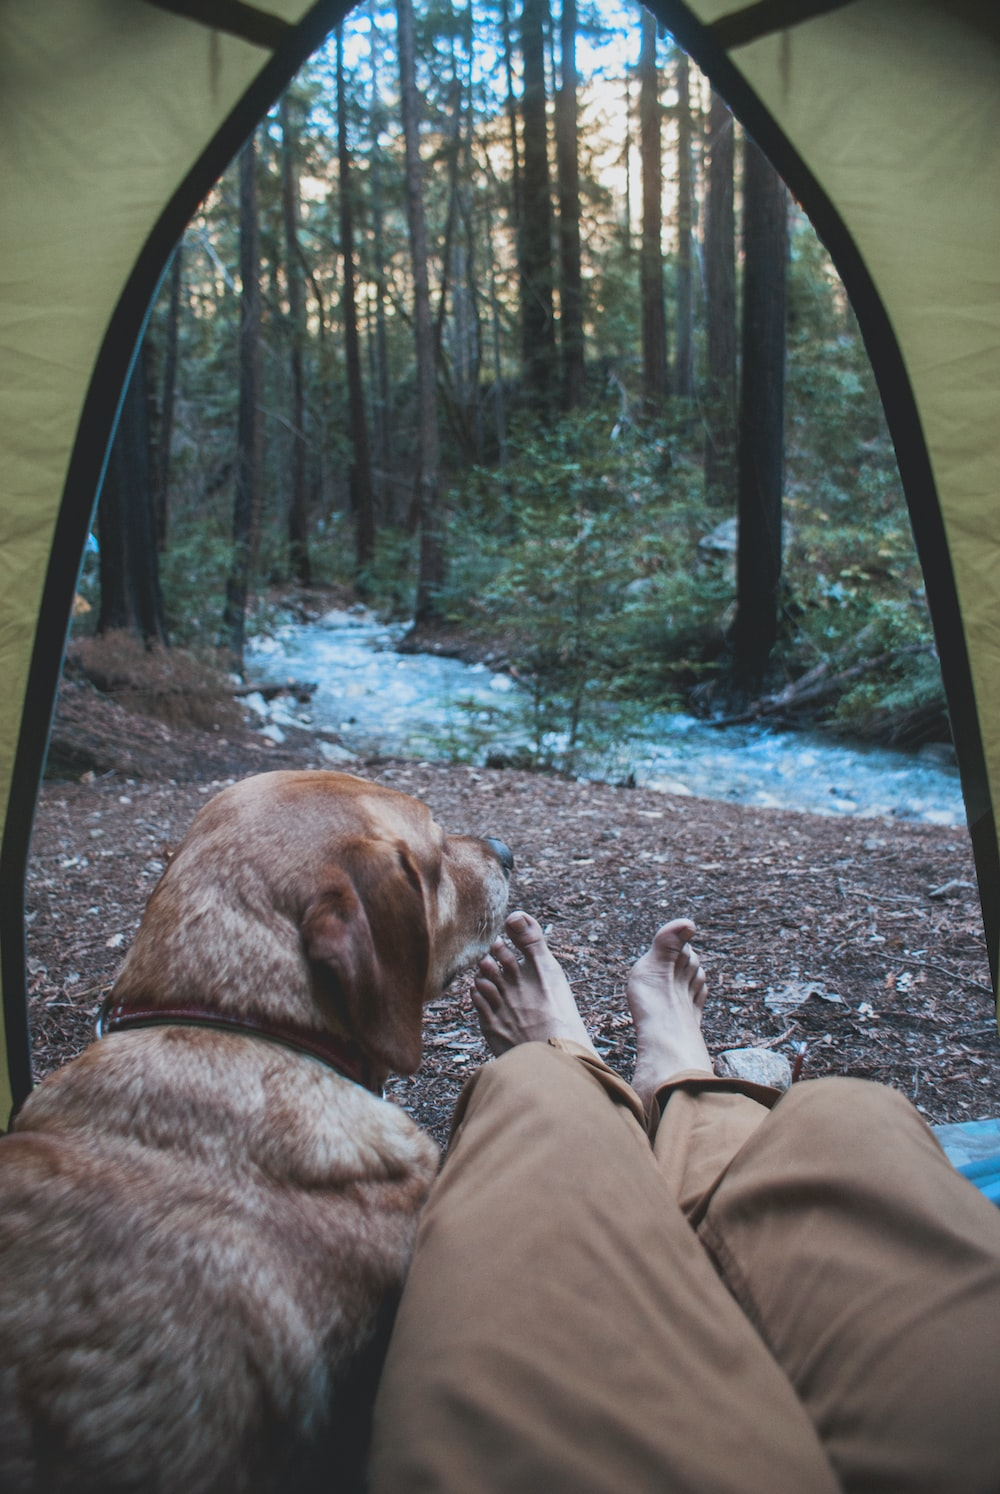 person and dog inside tent in woods